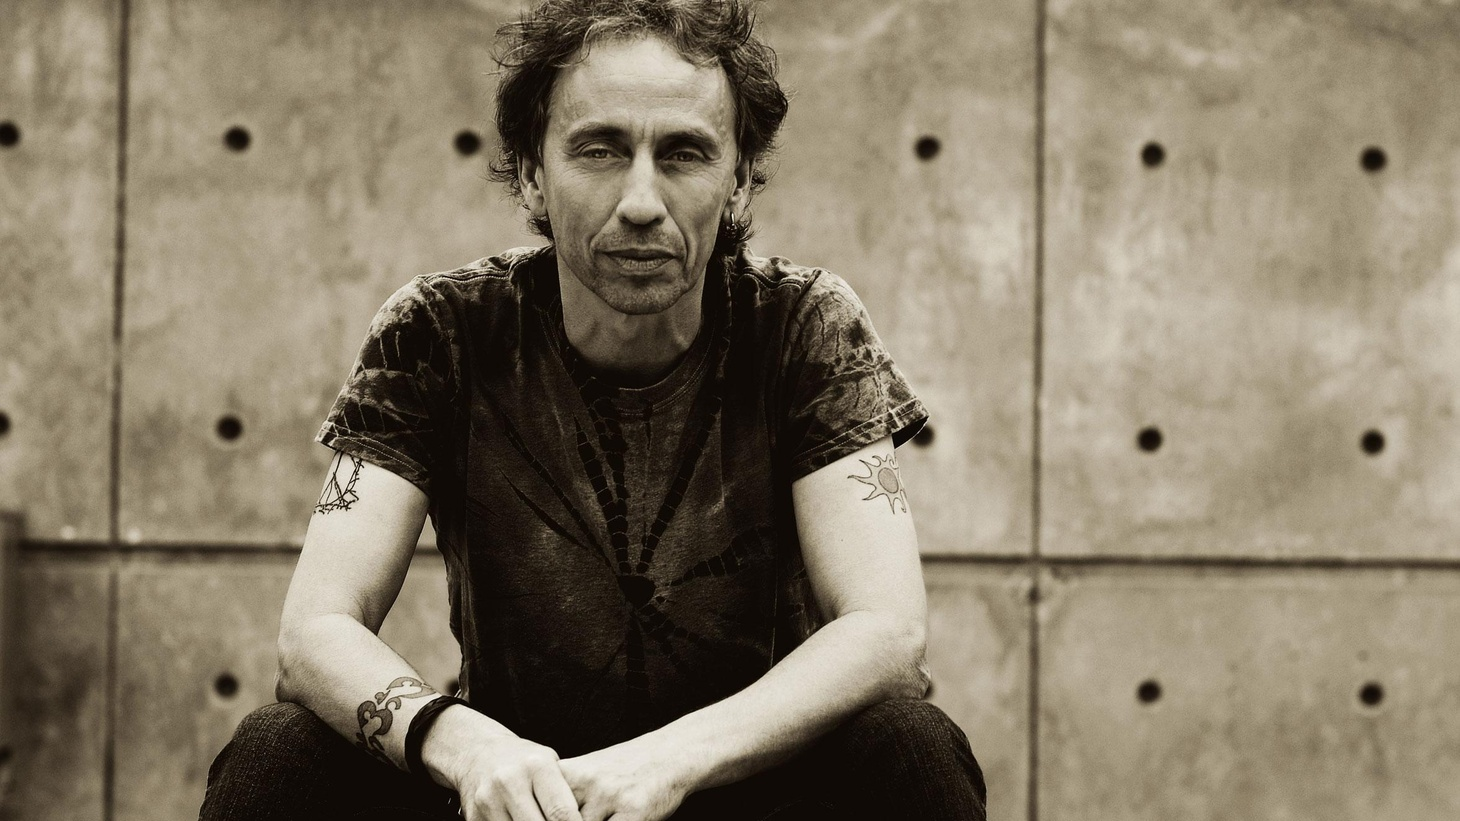 On this edition of Sounds Eclectic, host Nic Harcourt plays new, upcoming and recent releases from Four Tet, Raul Malo, and the latest from Leonard Cohen. Plus an intimate live in-studio acoustic performance from Beck.  All this and much more on Sounds Eclectic.